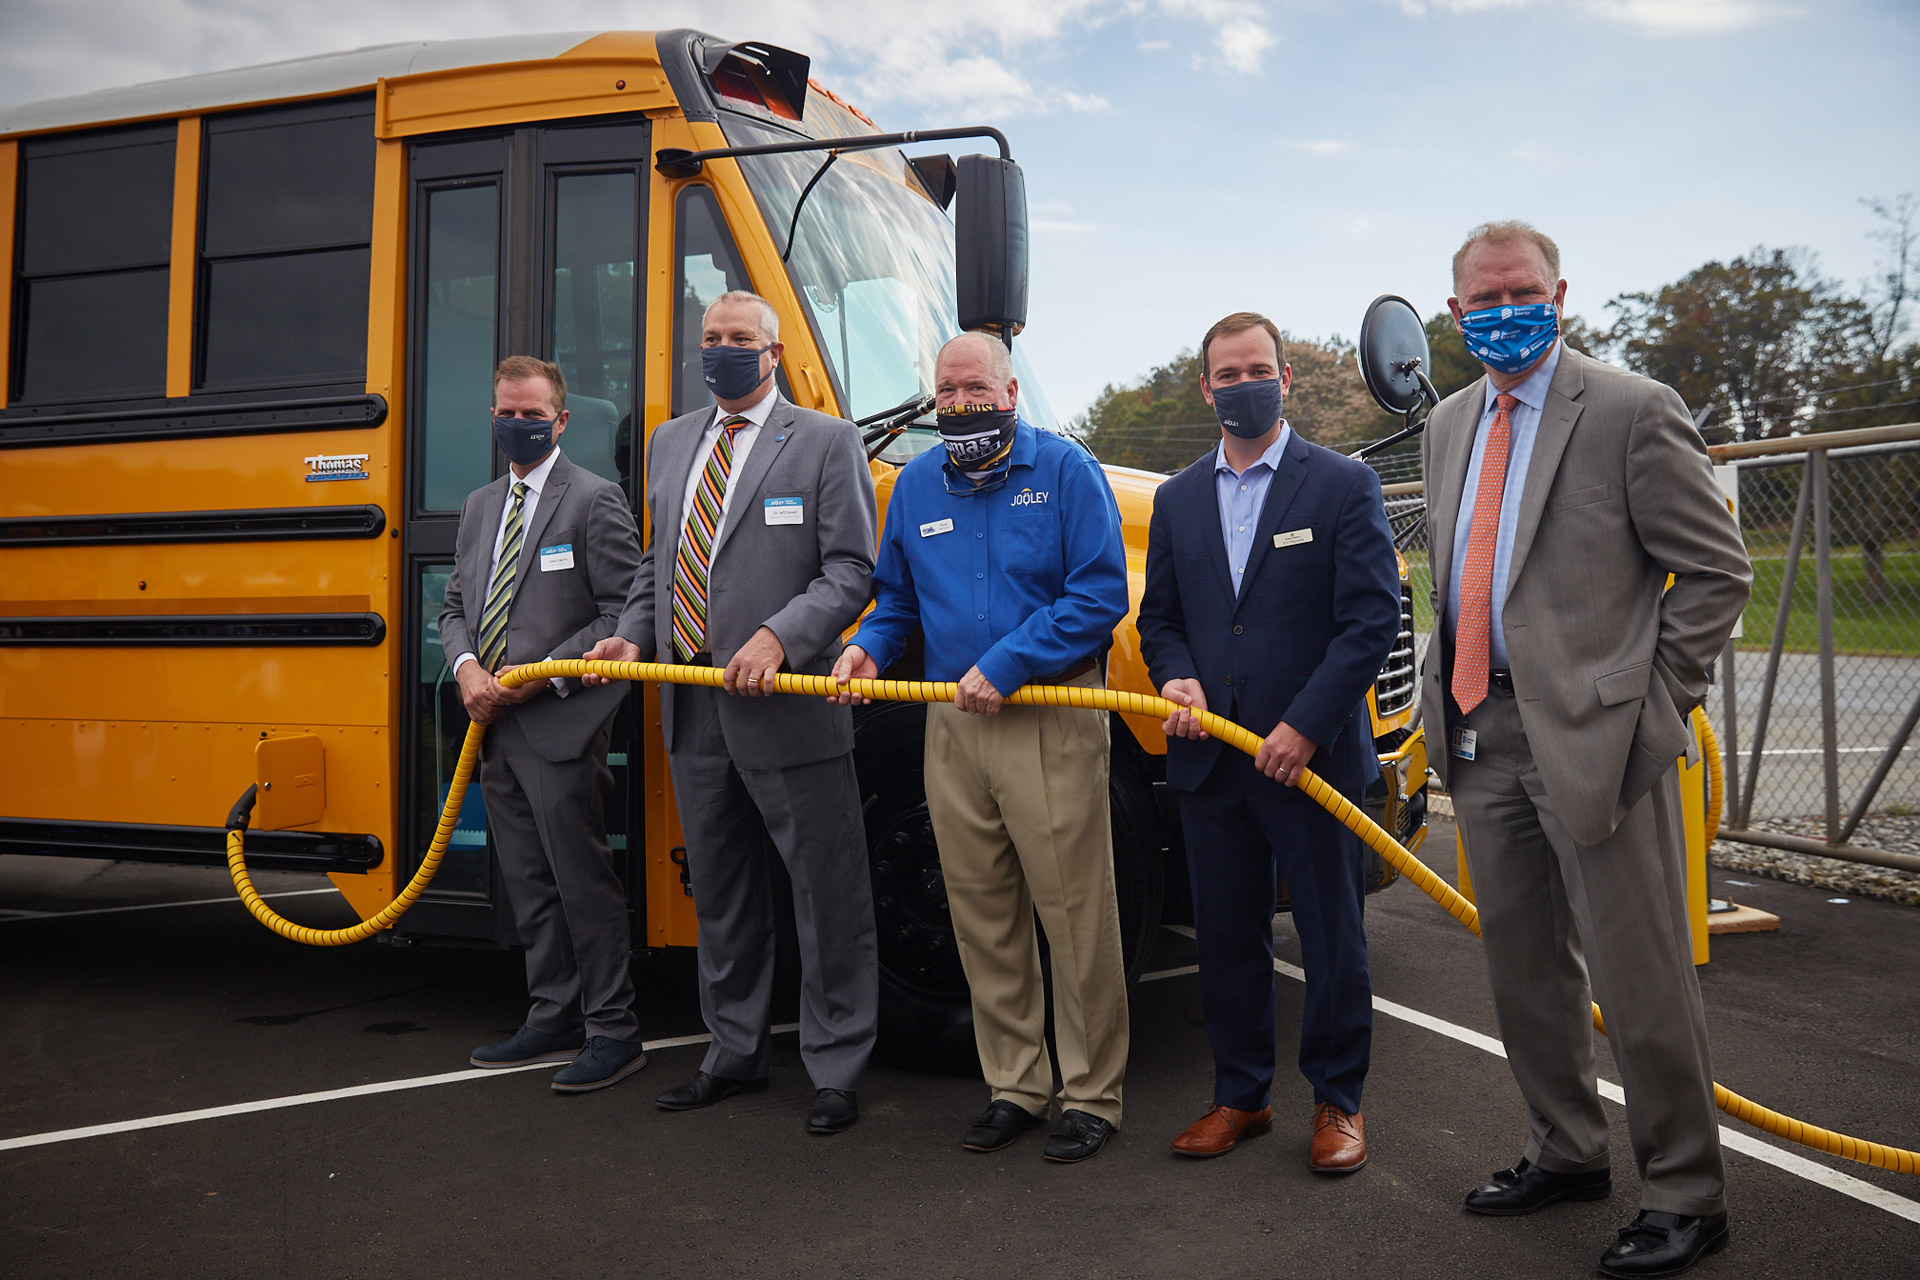 Pictured from left: Caley Edgerly, president and CEO of Thomas Built Buses; Dr. Jeff Cassell, superintendent of Waynesboro City Public Schools; Floyd Merryman, president and CEO of Sonny Merryman; Eric Reynolds, senior director of channel sales at Proterra; and Dan Weekley, vice president of energy innovation policy and implementation at Dominion Energy.